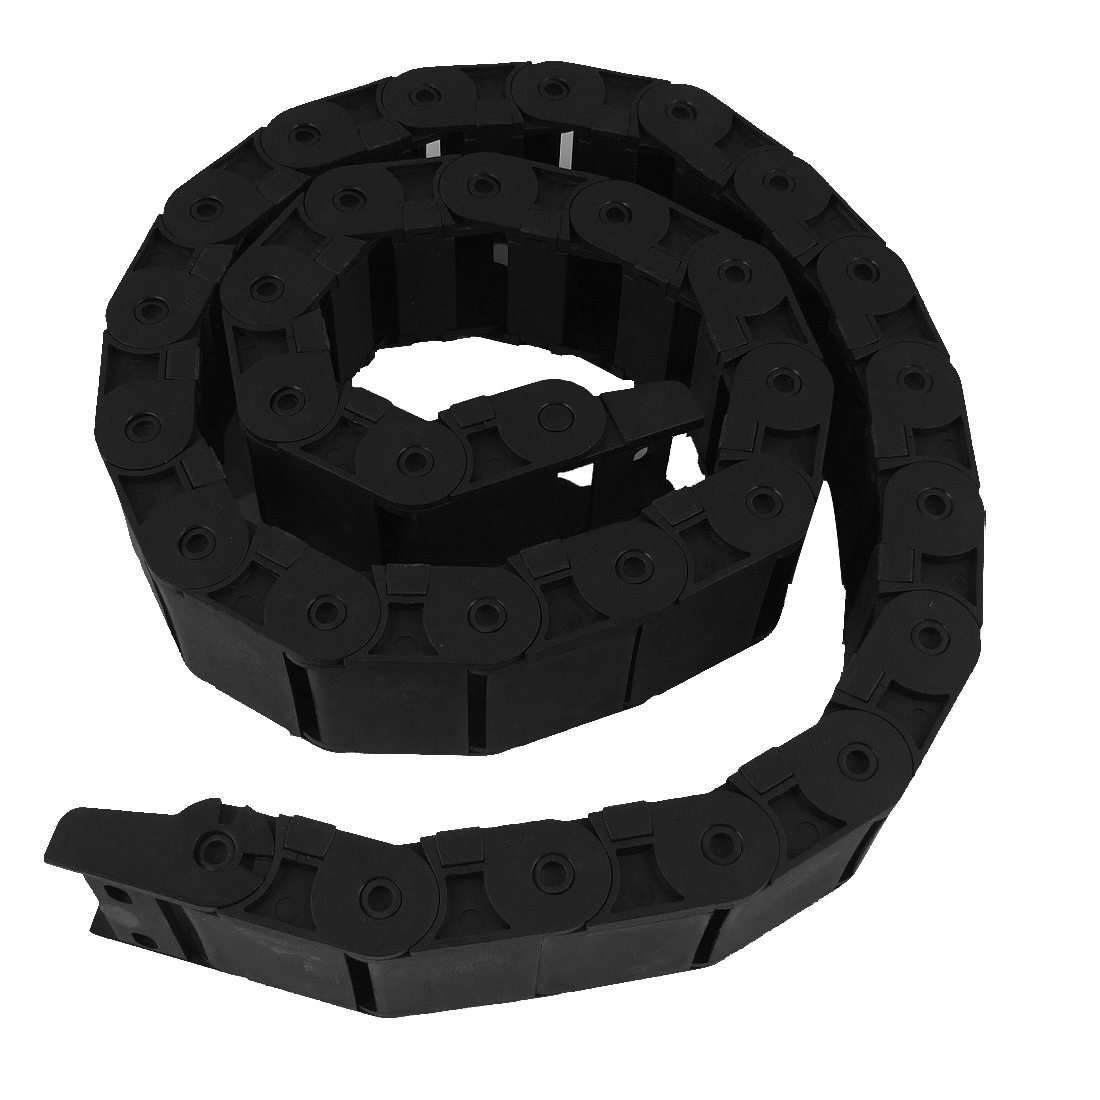 "Black 42.9"" Flexible Cable Carrier Drag Chain 18 x 37mm"